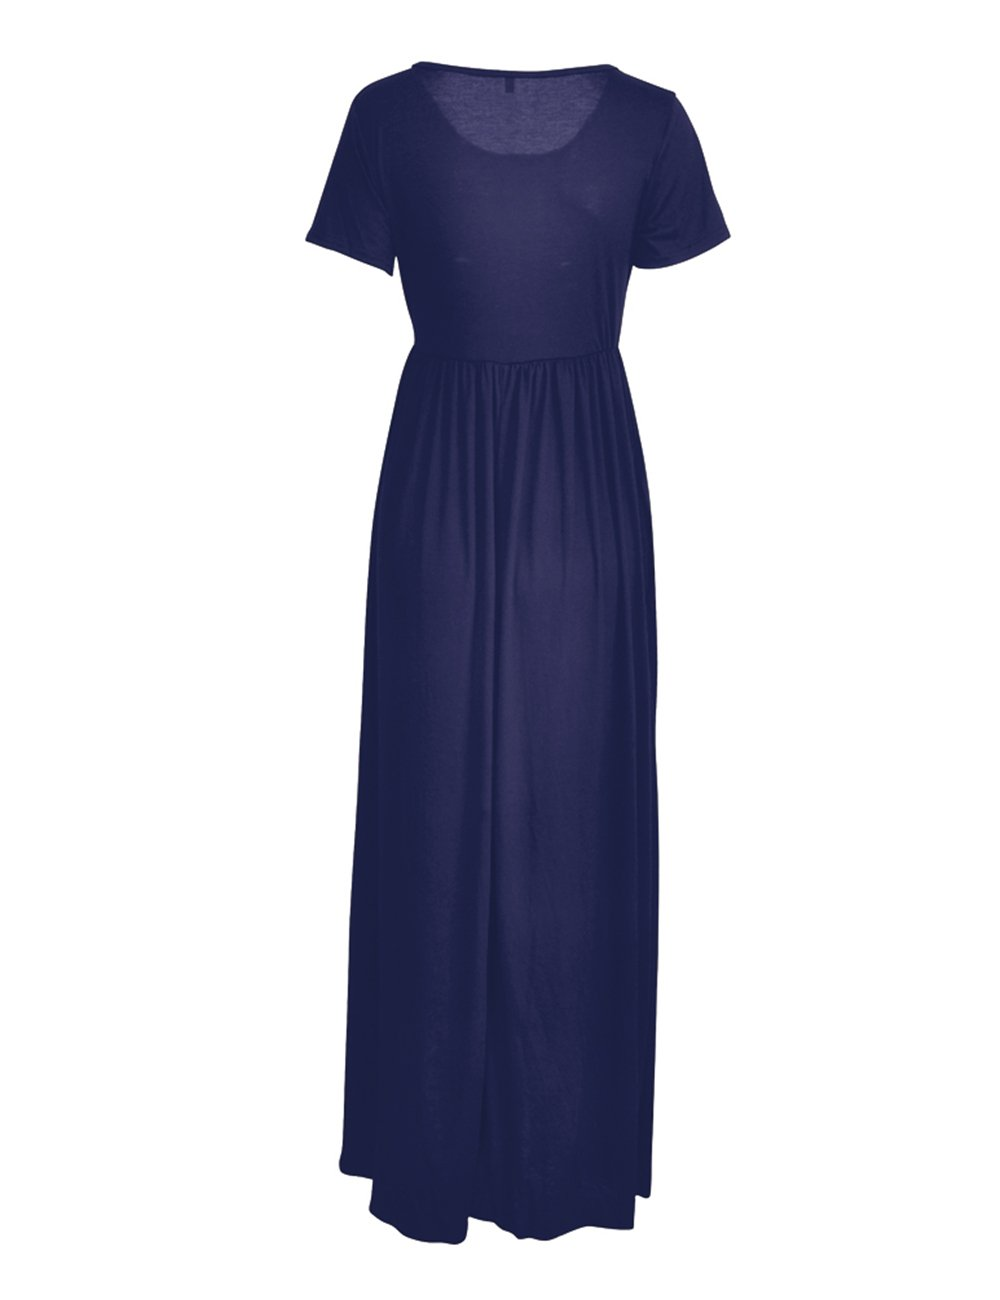 ORQ Women's Short Sleeve Loose Plain Casual Long Maxi Tunic Dress With Pockets by ORQ (Image #6)